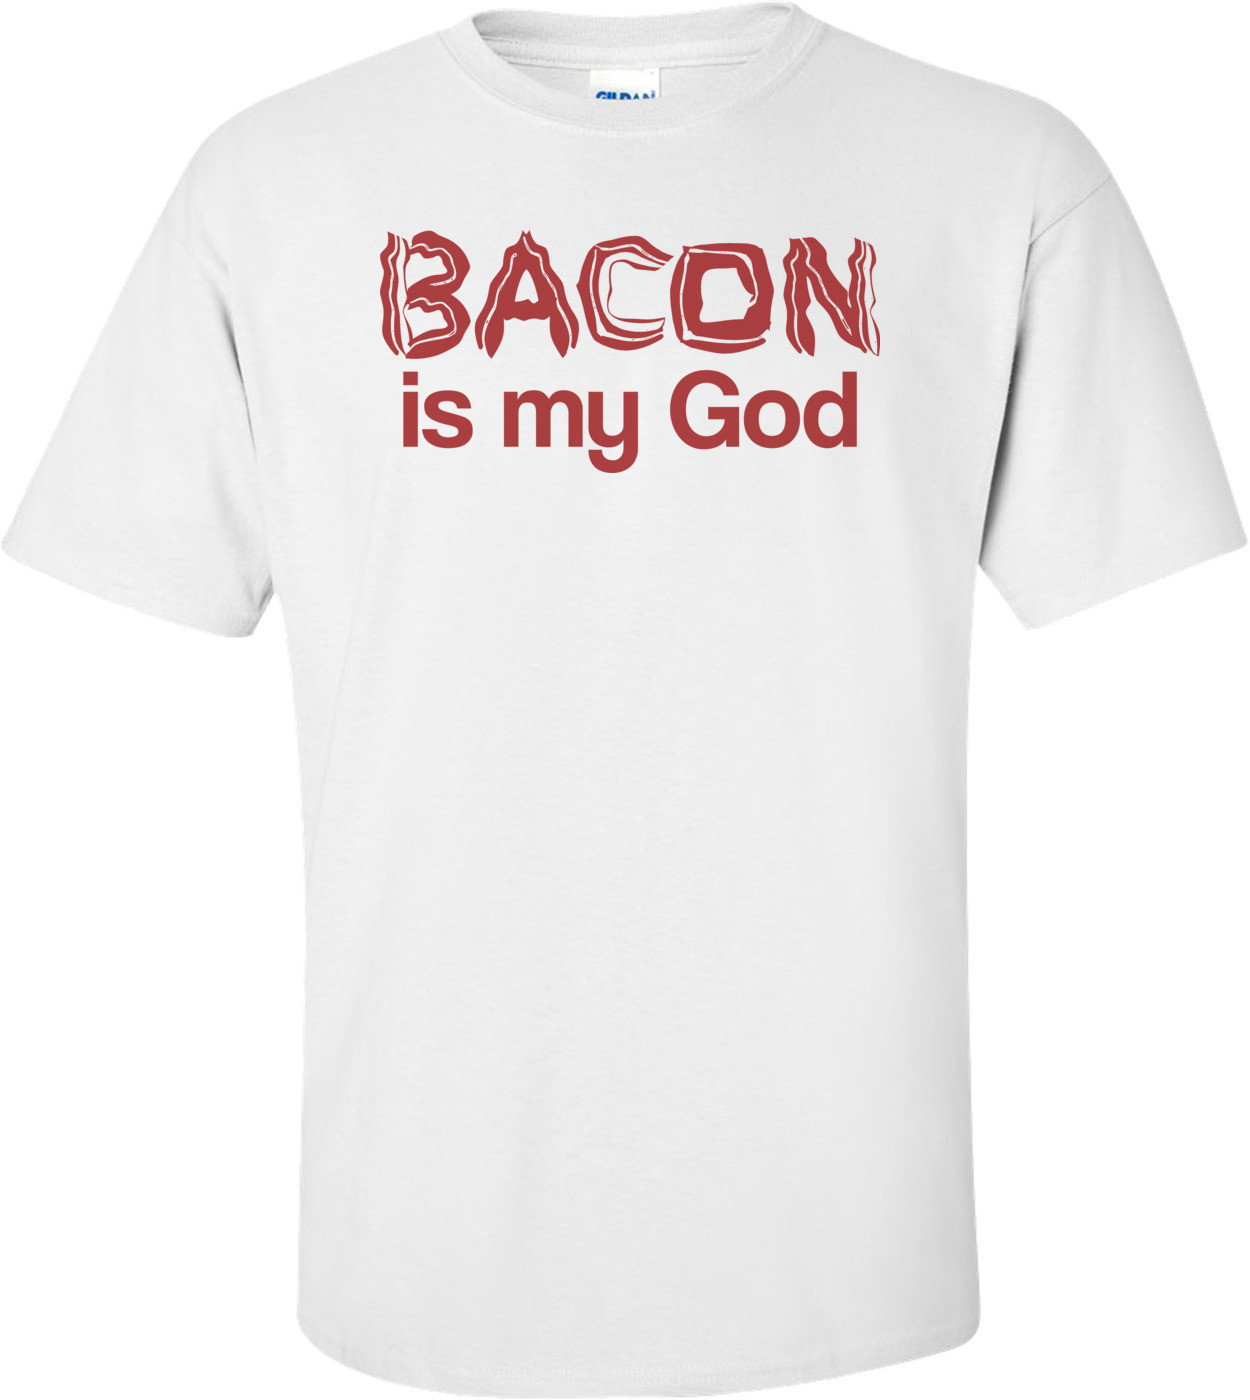 Bacon Is My God T-shirt